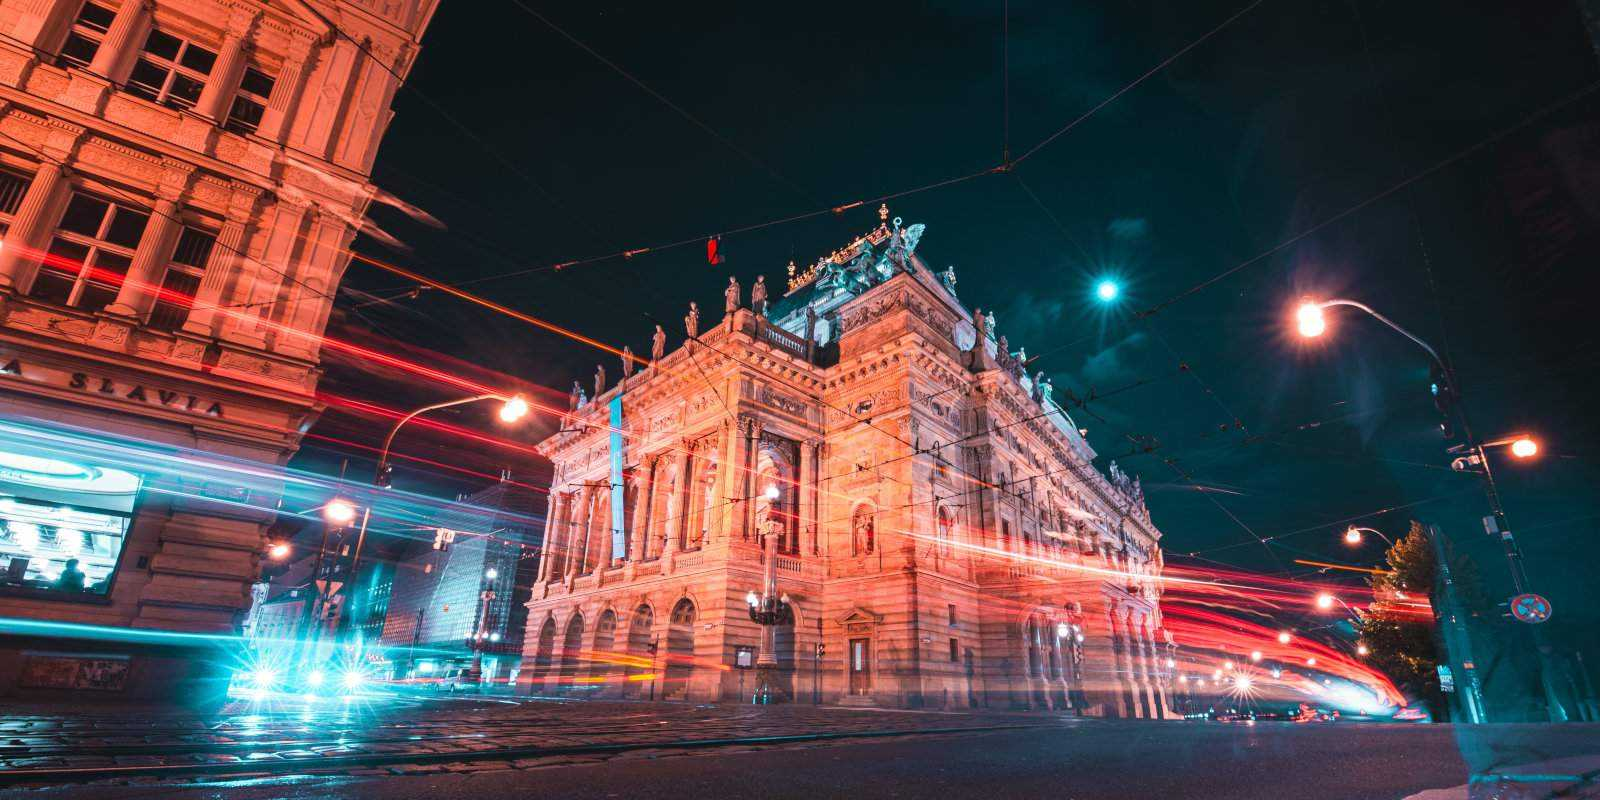 Arriving to Prague airport at night isn't always the most convenient for getting to the city centre, but at least the city is pretty at night!